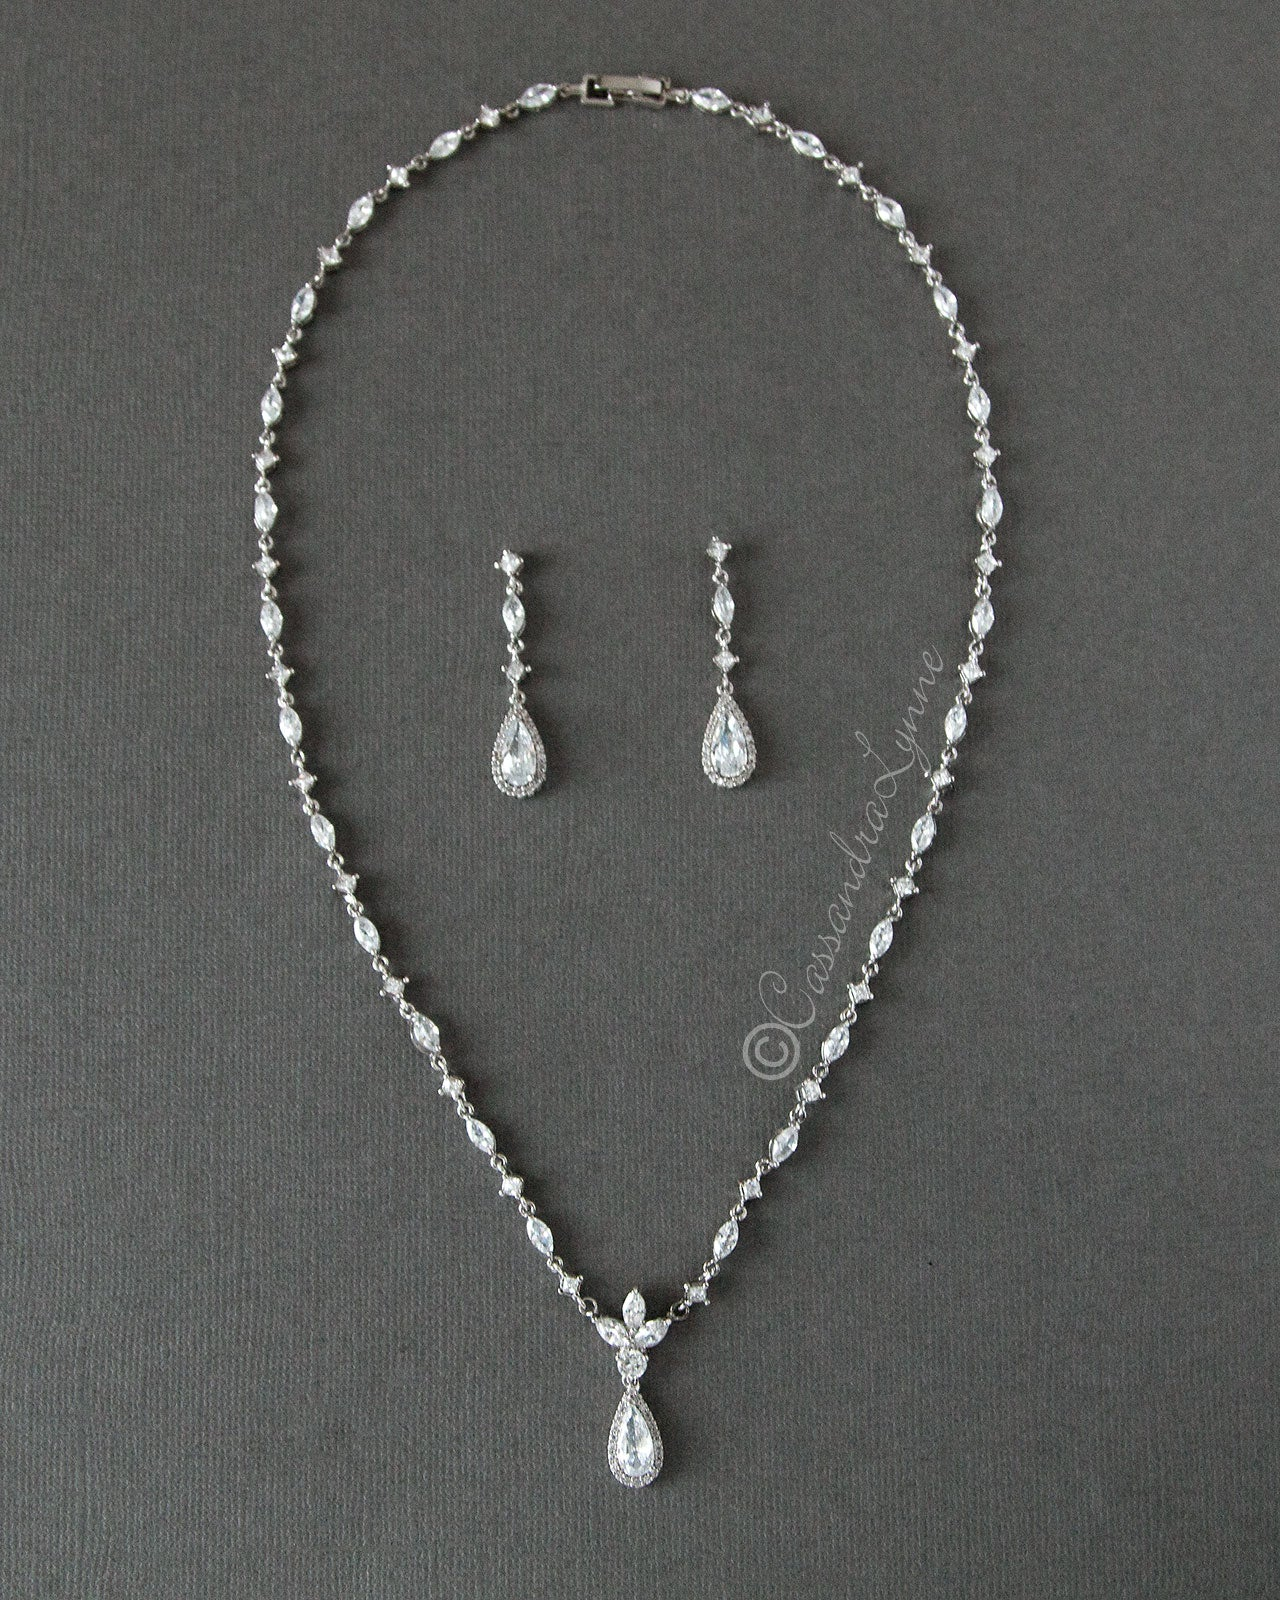 Bridal Necklace and Earrings with Elongated Pear Drop